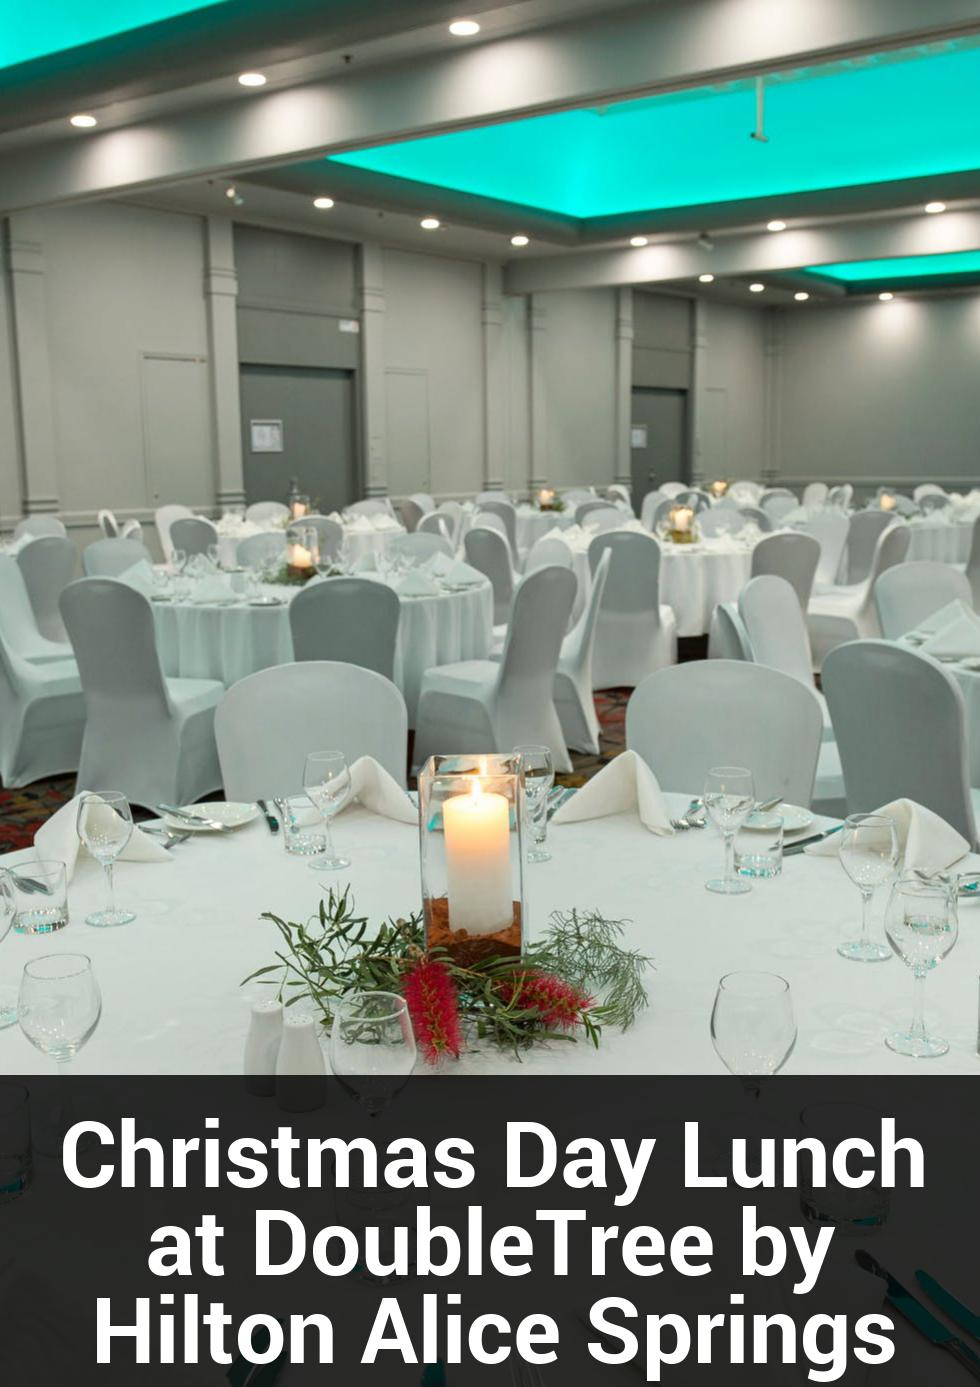 Christmas Day Lunch at DoubleTree by Hilton Alice Springs at DoubleTree by Hilton Alice Springs